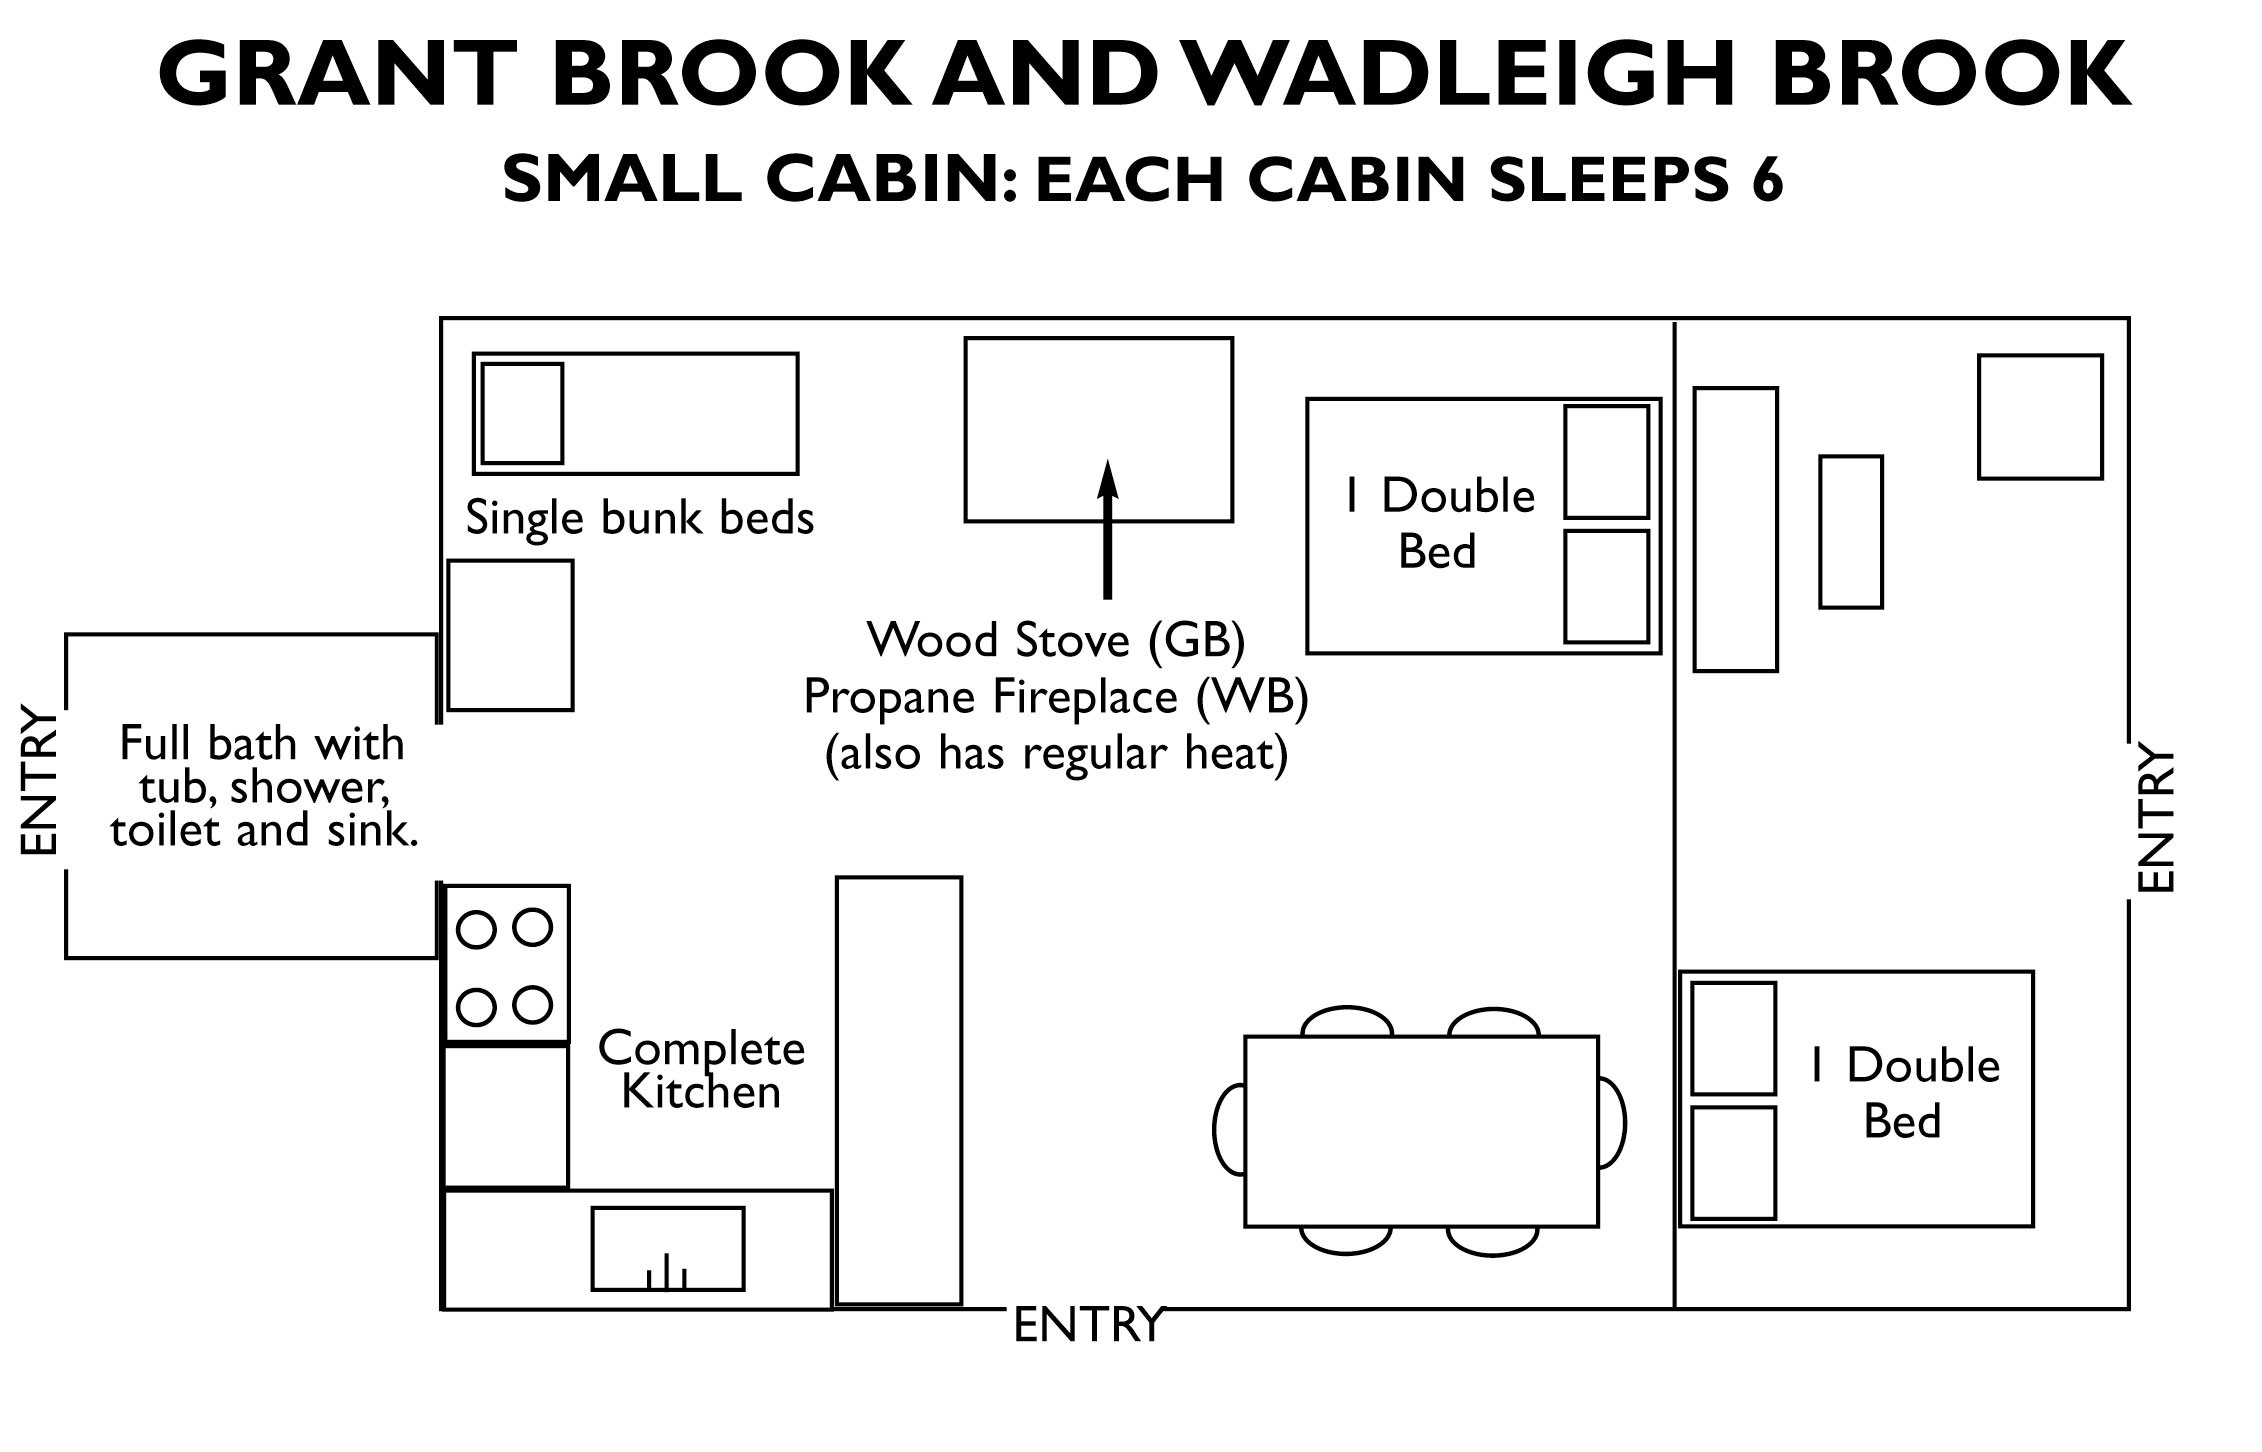 Lodging in Maine | Cabin rentals in Maine | Wadleigh Brook Cabin